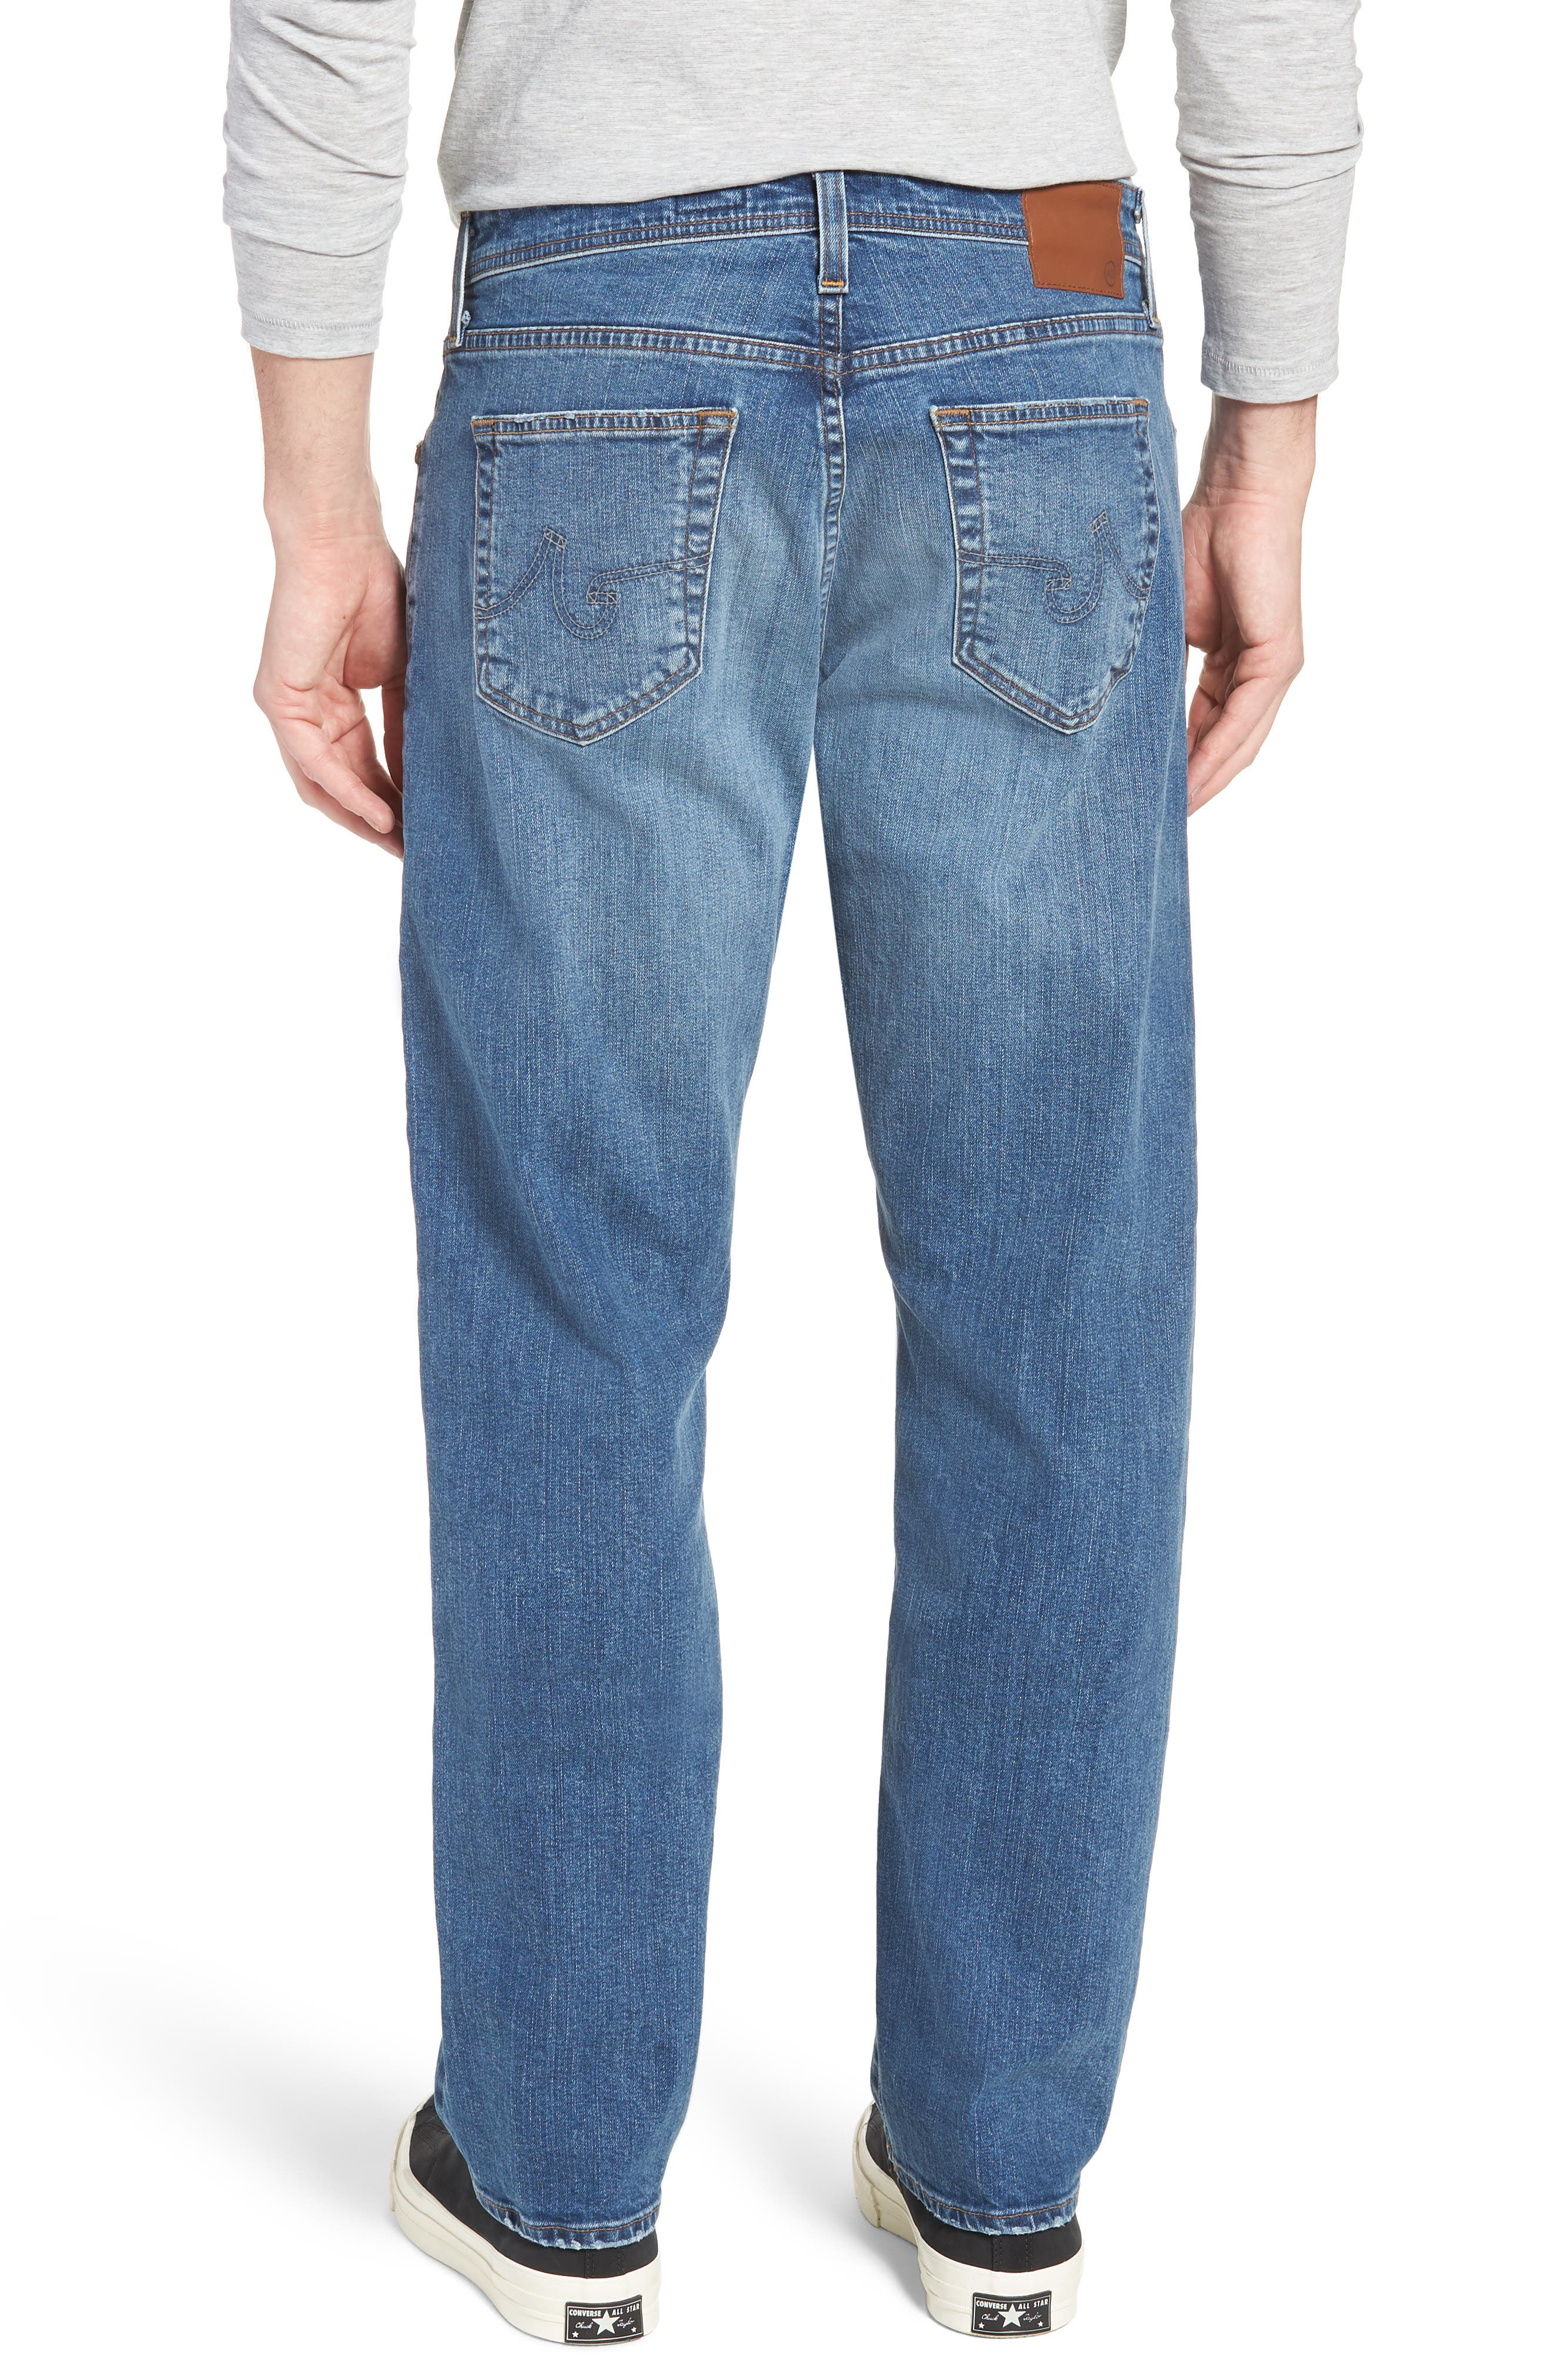 Ives Straight Leg Jeans,                             Alternate thumbnail 2, color,                             485